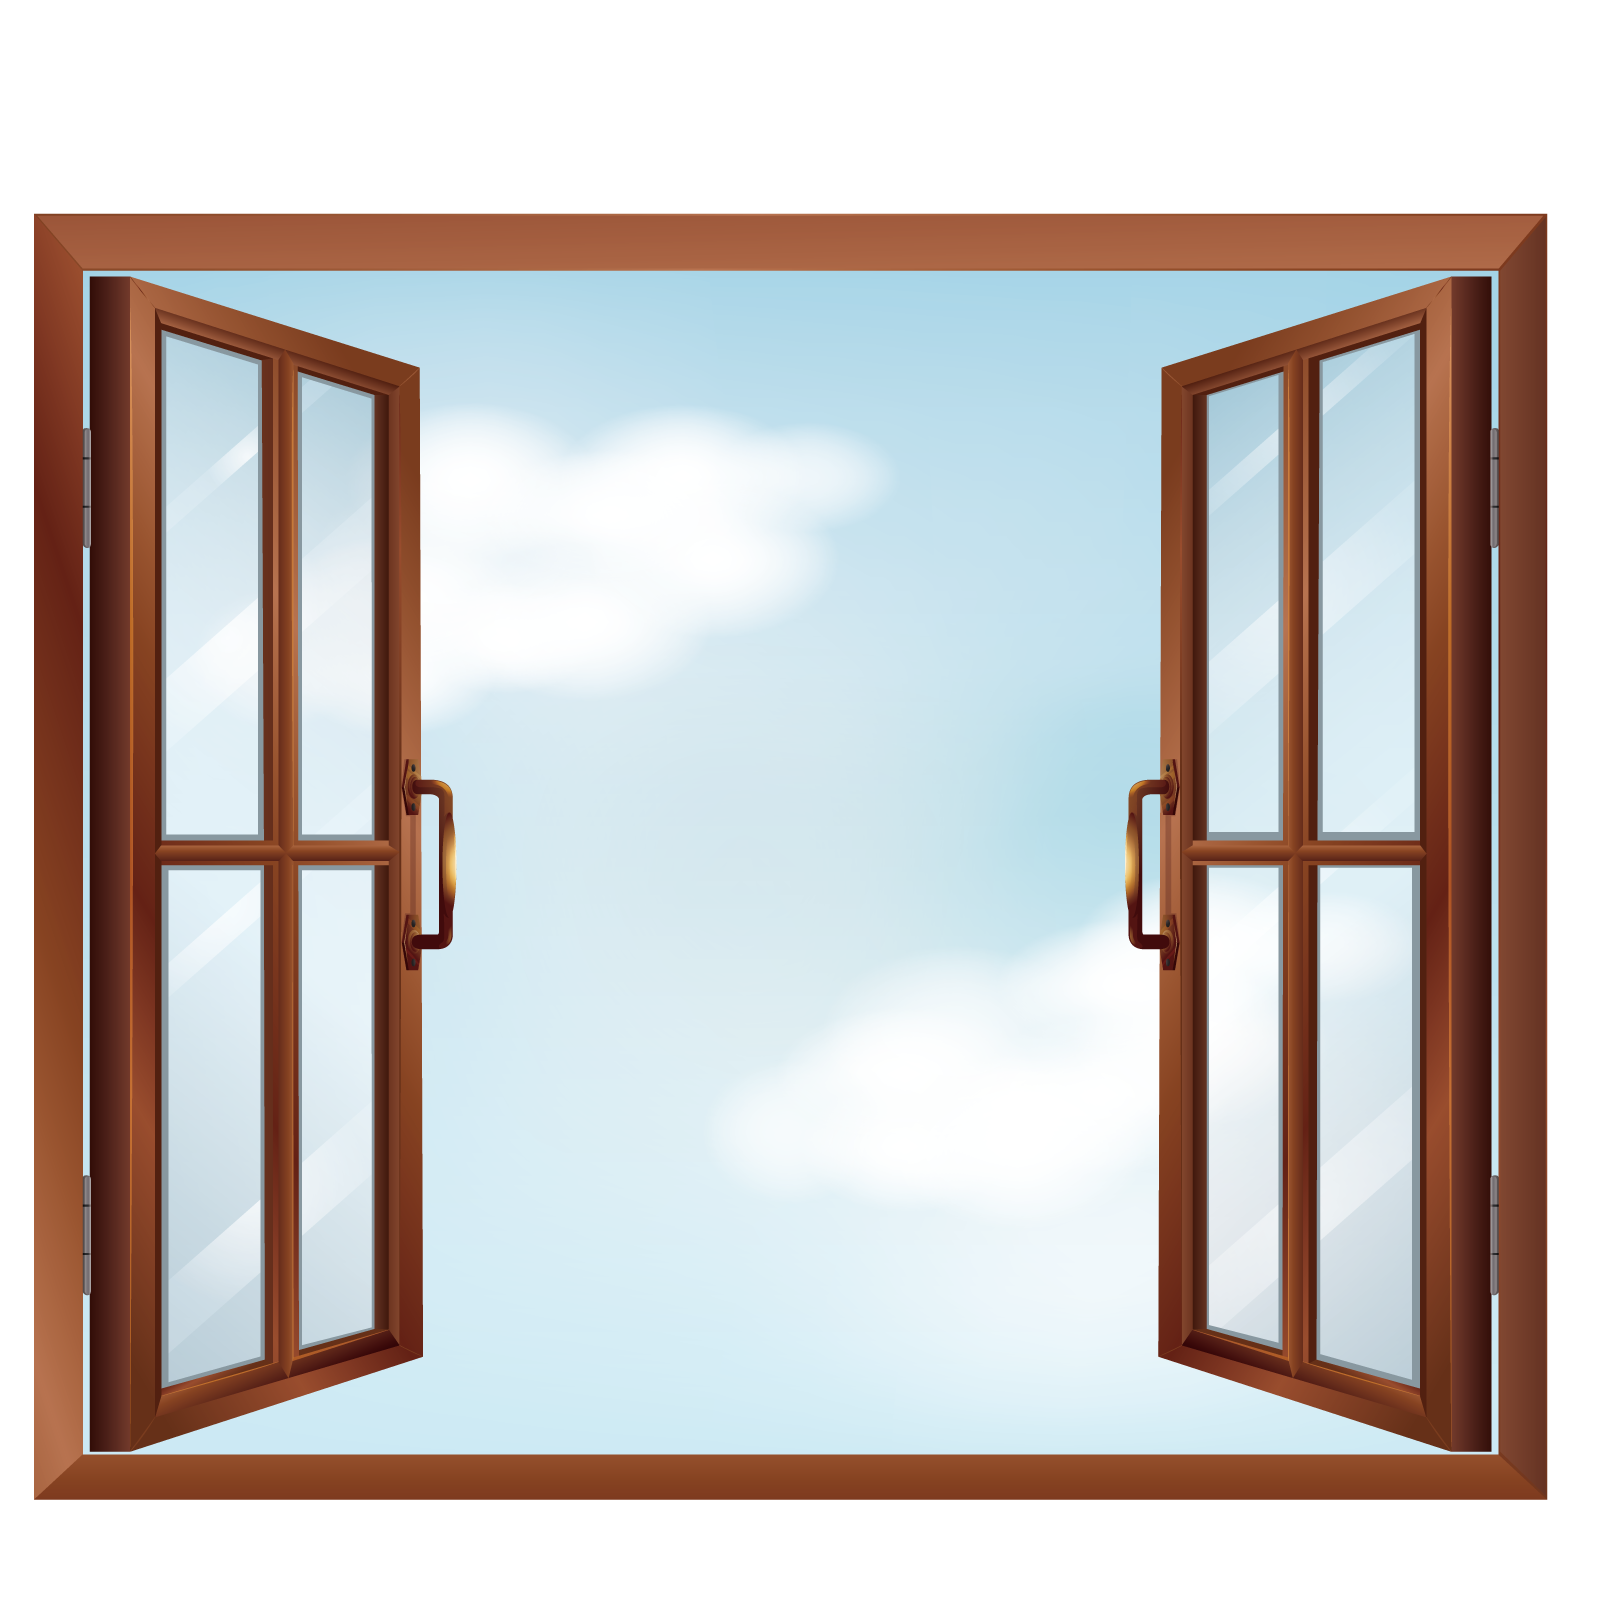 Clipart castle windows. Window clip art vector